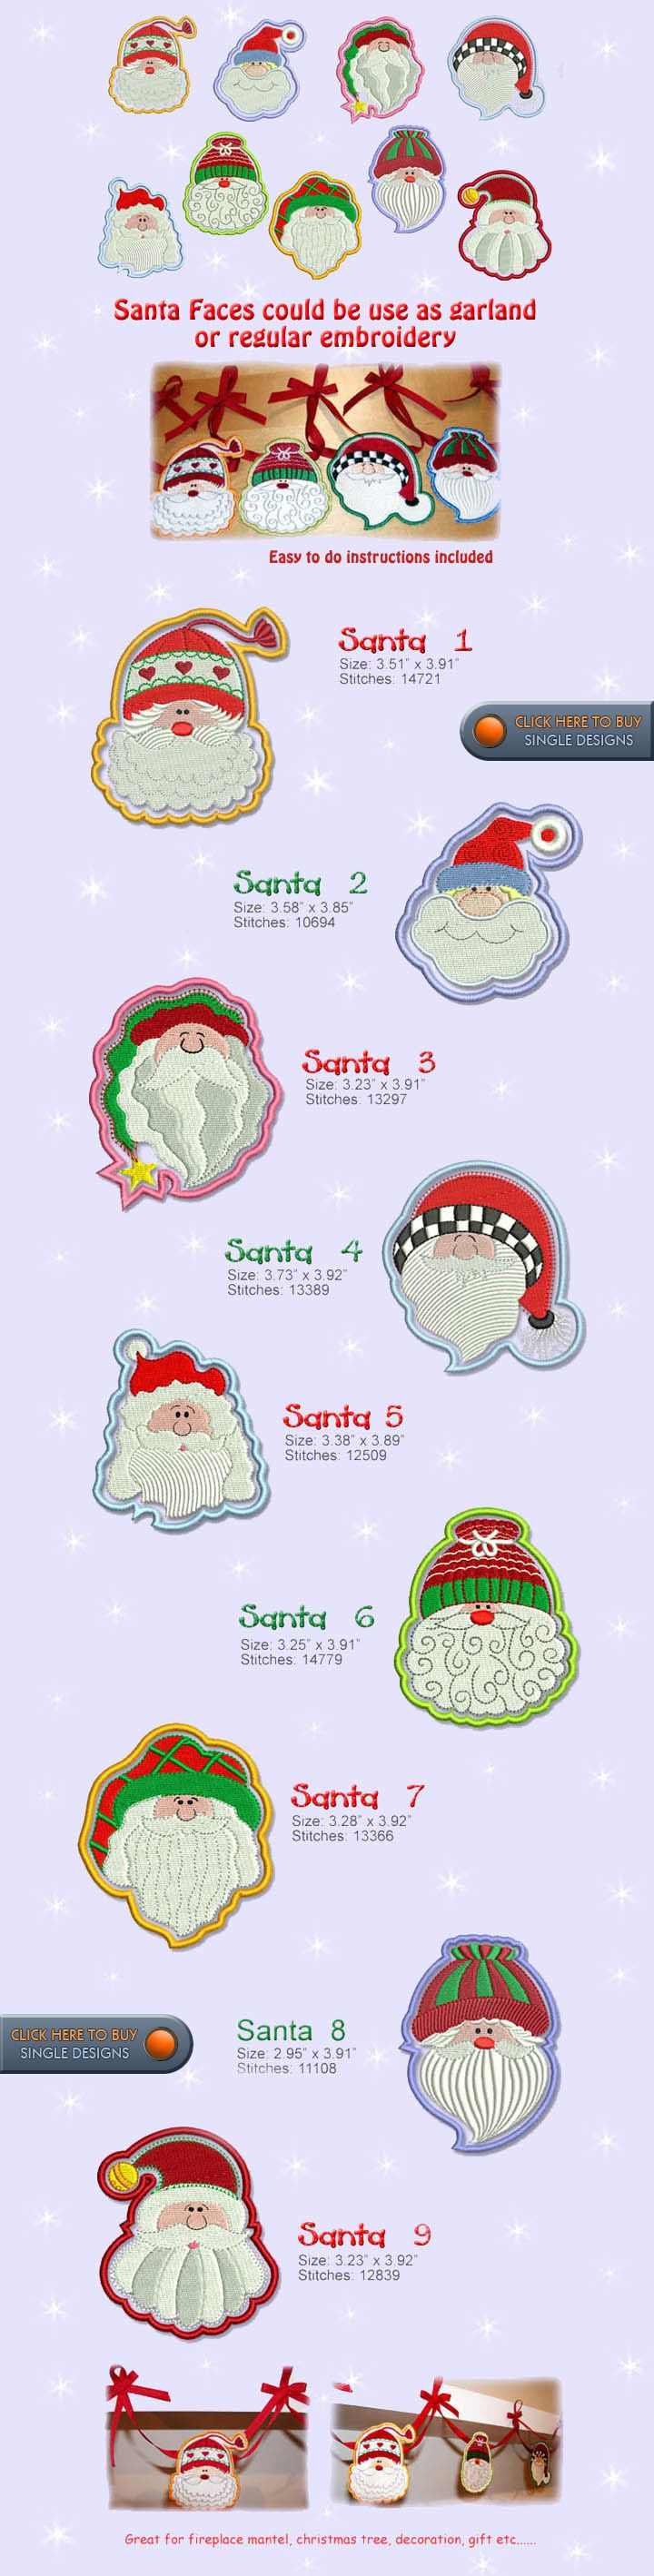 SANTA Embroidery Designs Free Embroidery Design Patterns